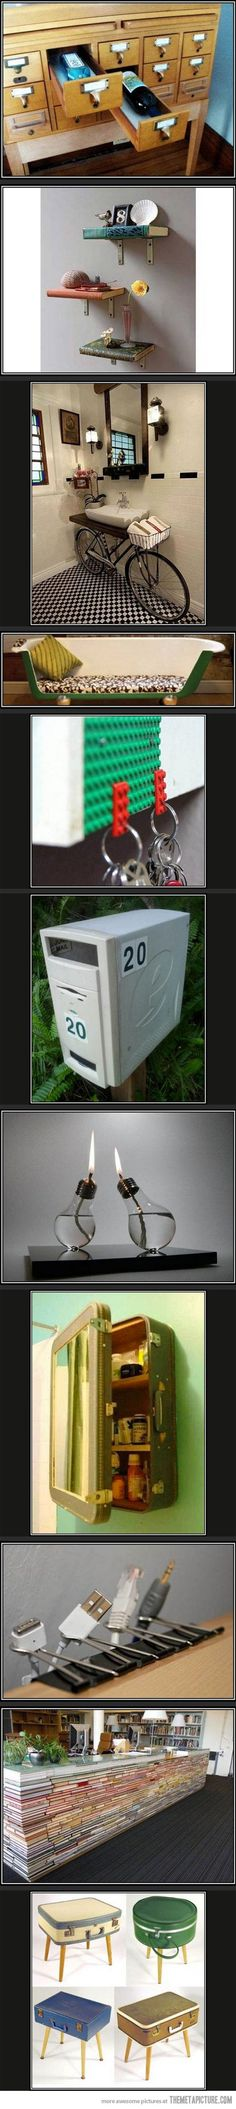 Creative ways to repurpose old stuff...